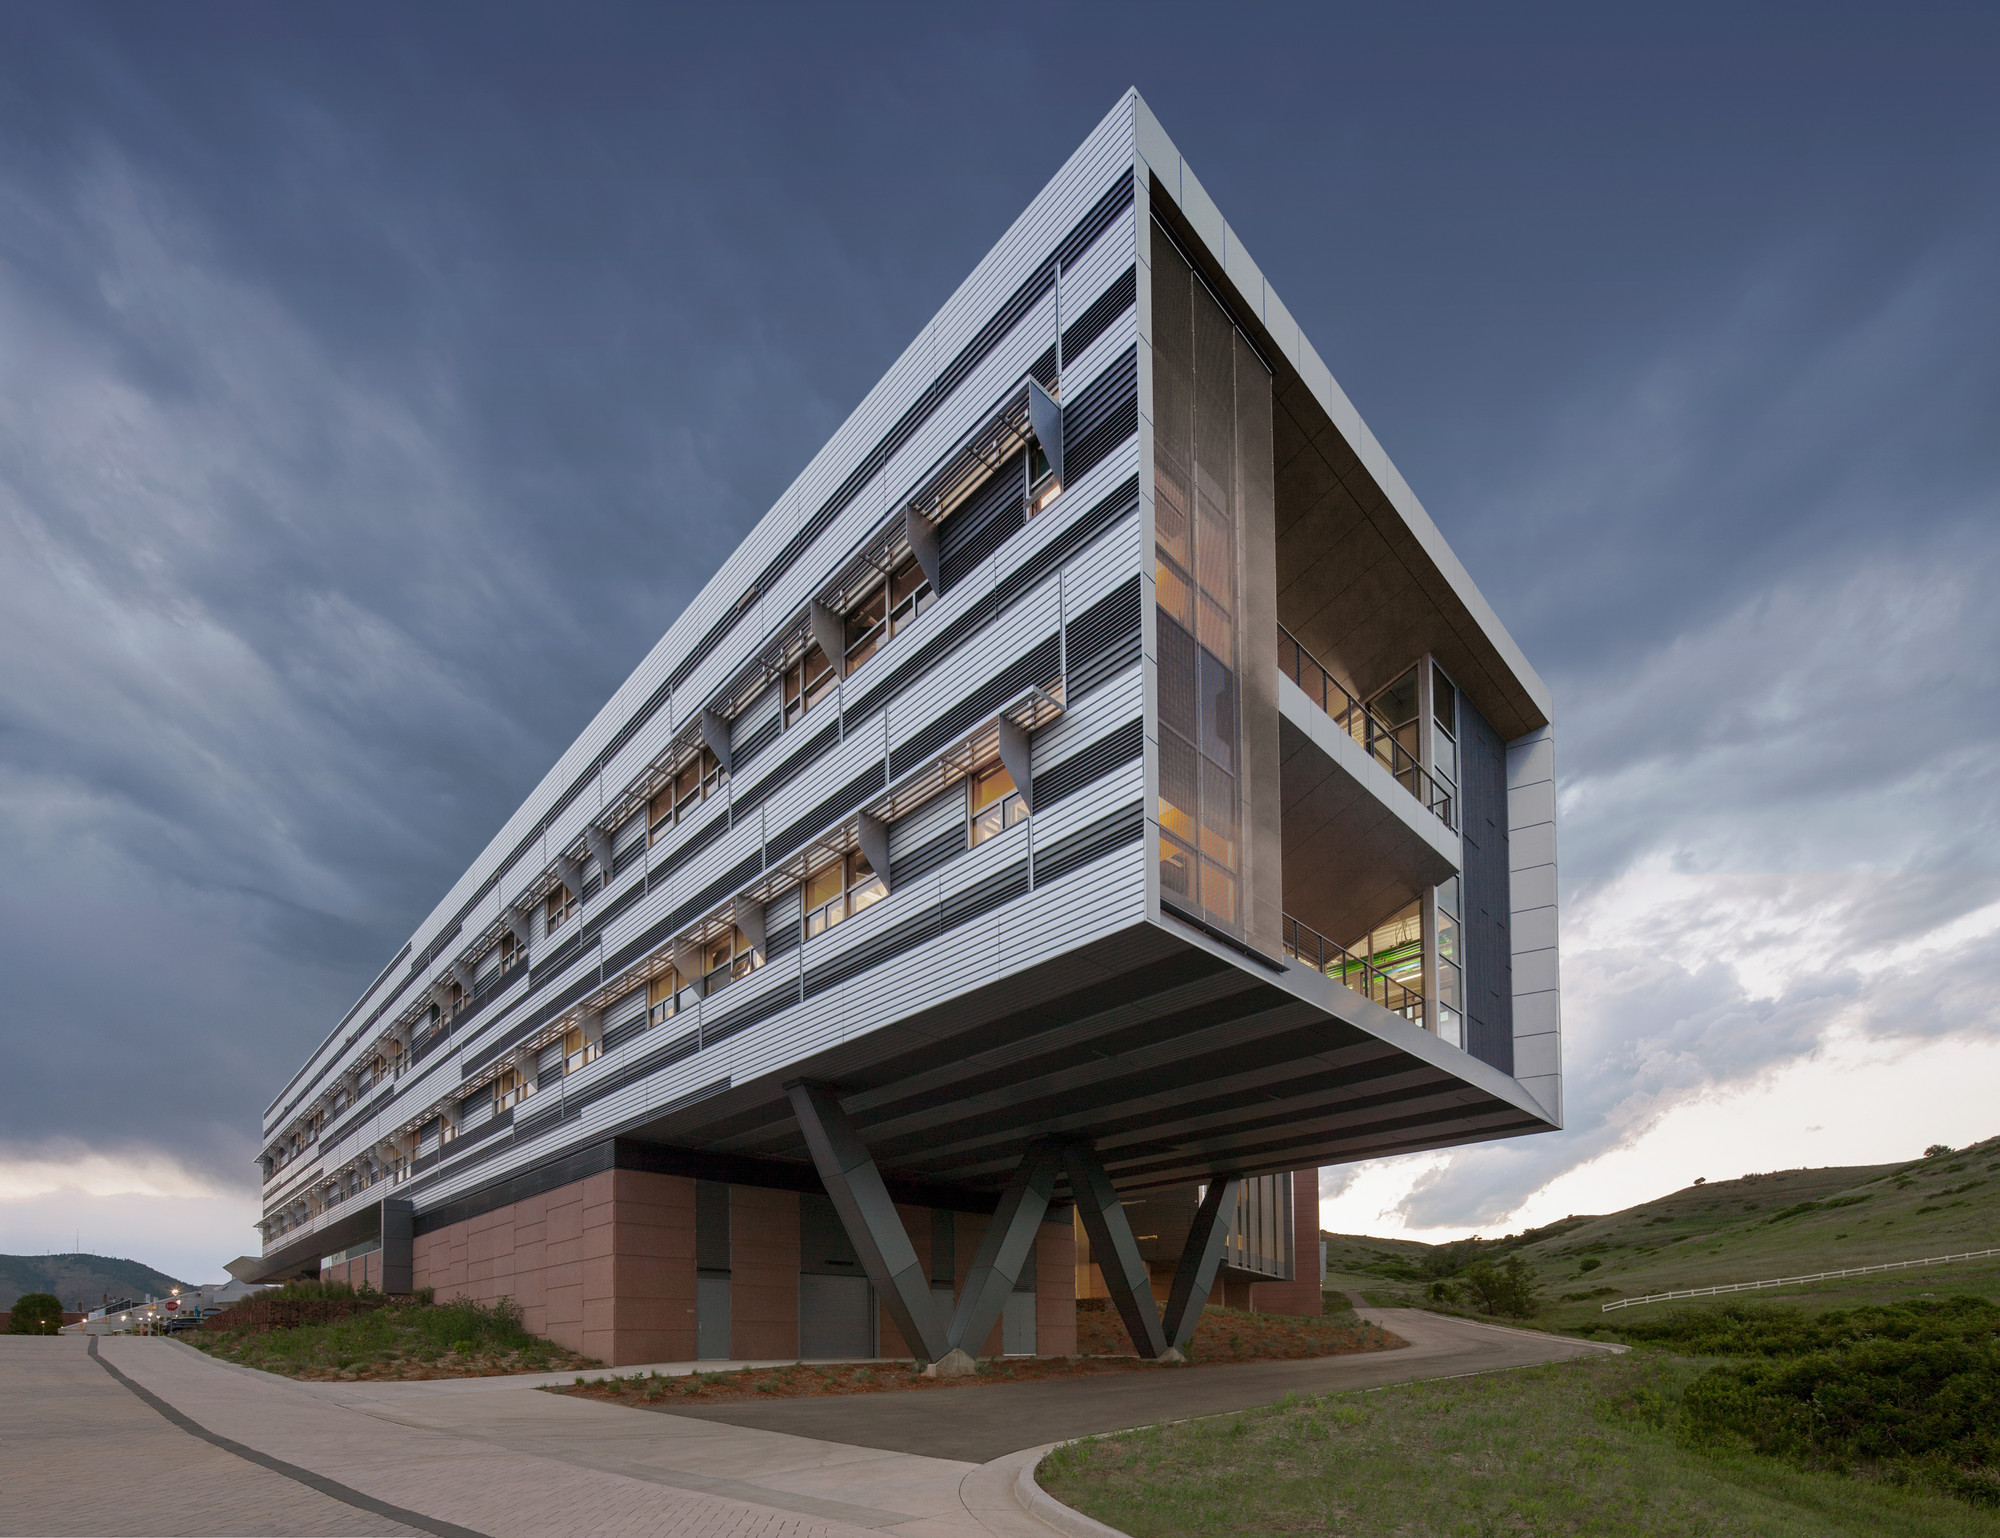 National Renewable Energy Laboratory  / SmithGroupJJR, © Bill Timmerman